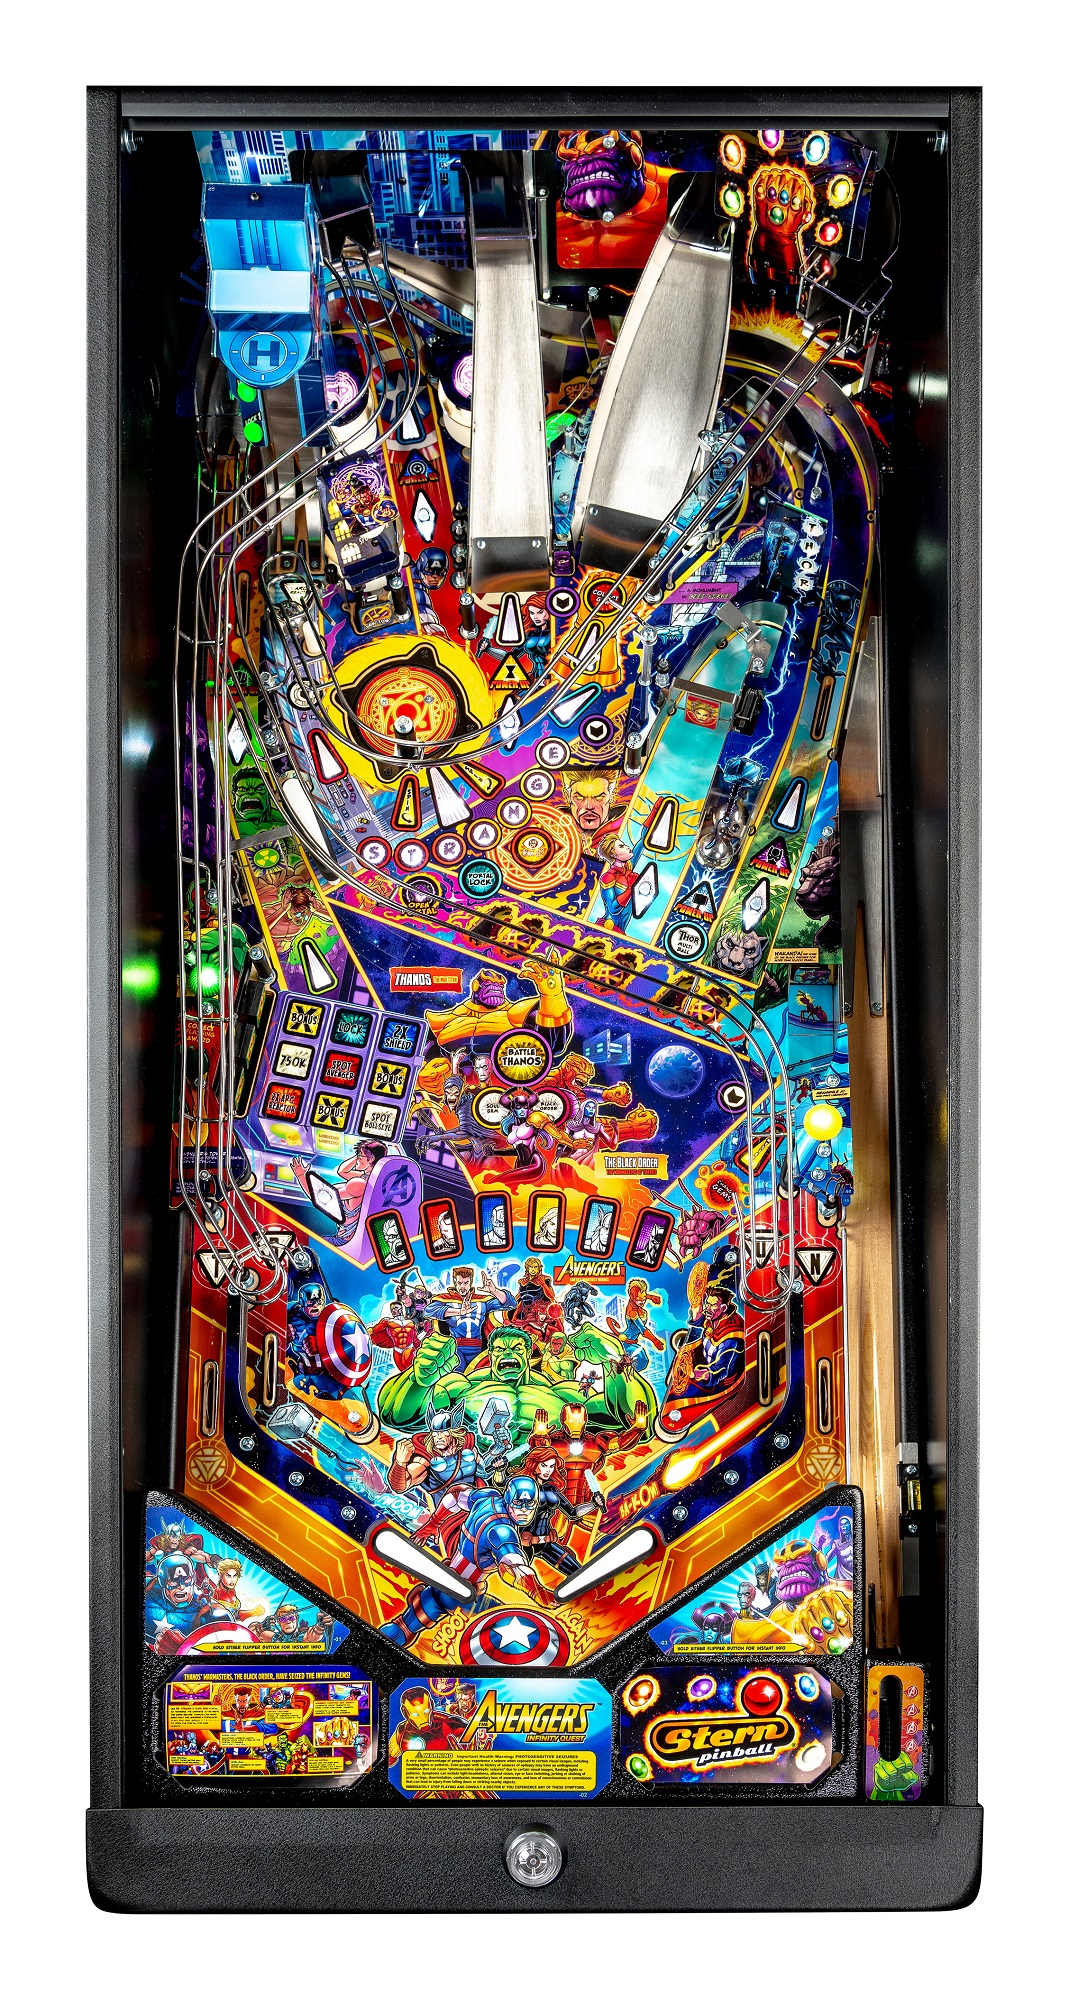 Avengers-Pro-Playfield_Low Res